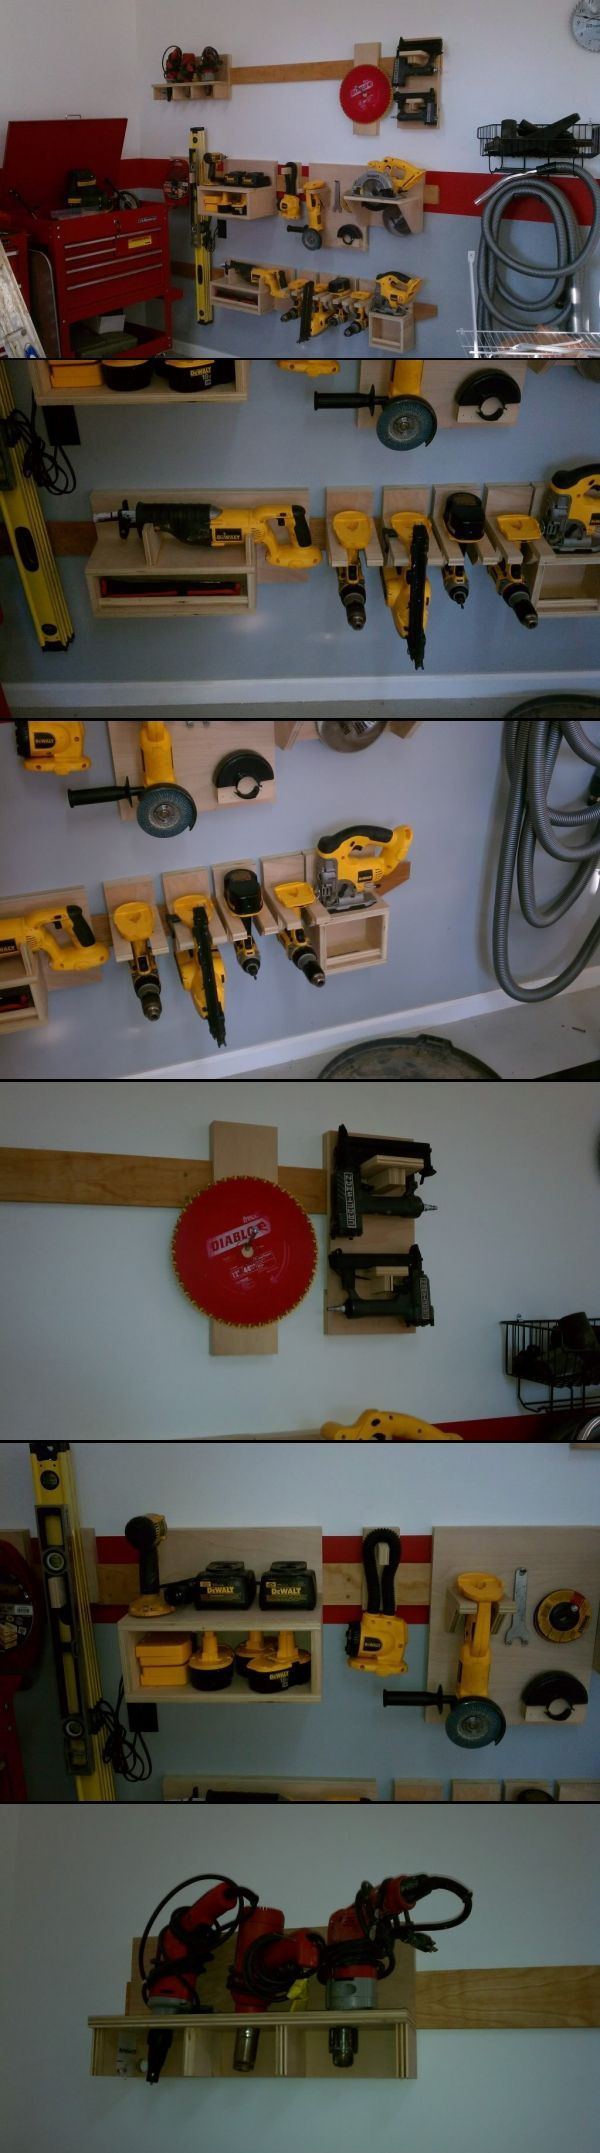 Storage Solutions                                                                                                                                                                                 More